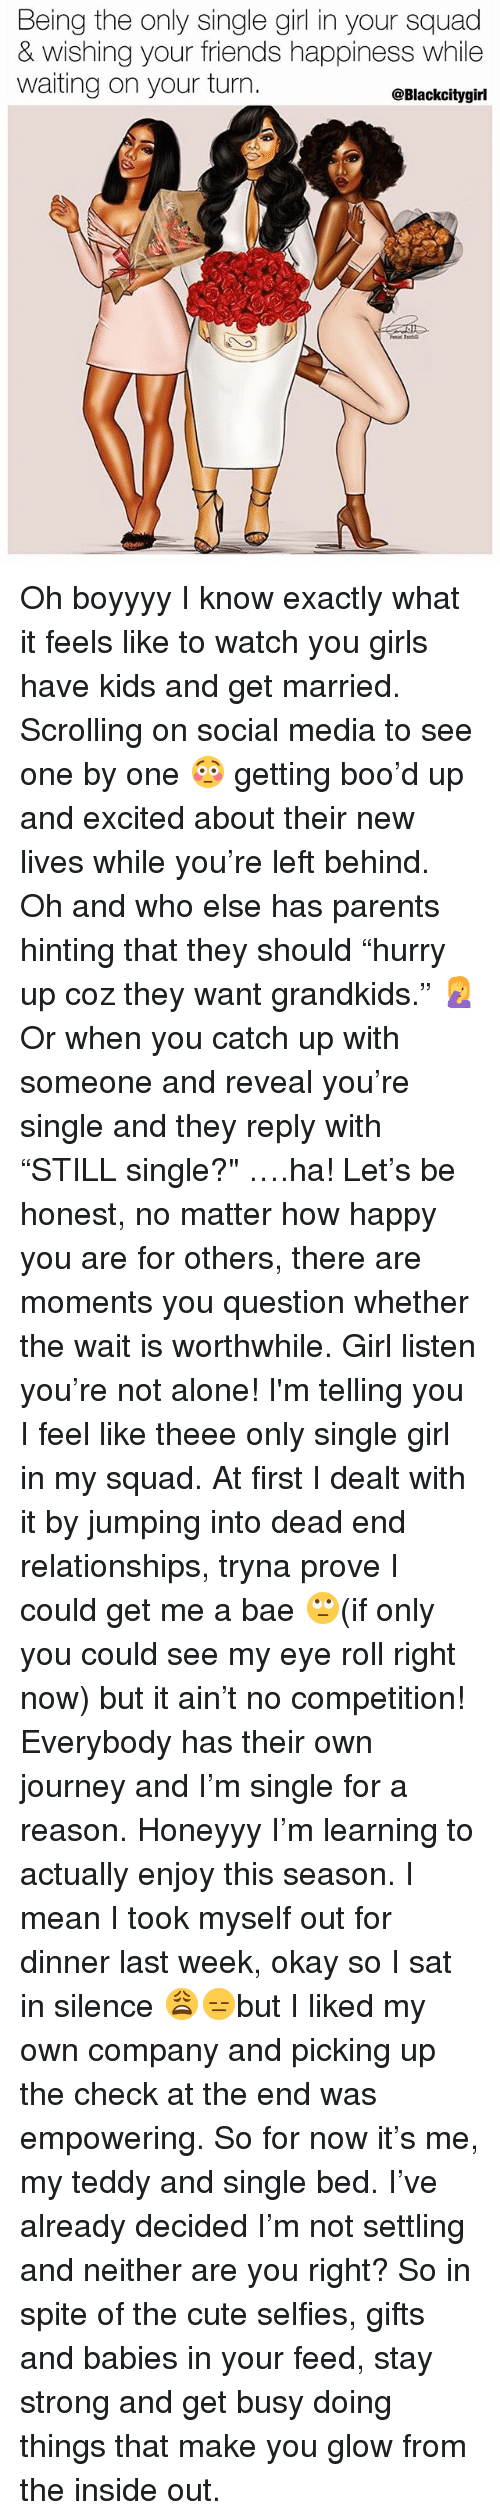 """single girl: Being the only single girl in your squad  & wishing your friends happiness while  waiting on your turn  @Blackcitygirl Oh boyyyy I know exactly what it feels like to watch you girls have kids and get married. Scrolling on social media to see one by one 😳 getting boo'd up and excited about their new lives while you're left behind. Oh and who else has parents hinting that they should """"hurry up coz they want grandkids."""" 🤦♀️ Or when you catch up with someone and reveal you're single and they reply with """"STILL single?"""" ….ha! Let's be honest, no matter how happy you are for others, there are moments you question whether the wait is worthwhile. Girl listen you're not alone! I'm telling you I feel like theee only single girl in my squad. At first I dealt with it by jumping into dead end relationships, tryna prove I could get me a bae 🙄(if only you could see my eye roll right now) but it ain't no competition! Everybody has their own journey and I'm single for a reason. Honeyyy I'm learning to actually enjoy this season. I mean I took myself out for dinner last week, okay so I sat in silence 😩😑but I liked my own company and picking up the check at the end was empowering. So for now it's me, my teddy and single bed. I've already decided I'm not settling and neither are you right? So in spite of the cute selfies, gifts and babies in your feed, stay strong and get busy doing things that make you glow from the inside out."""